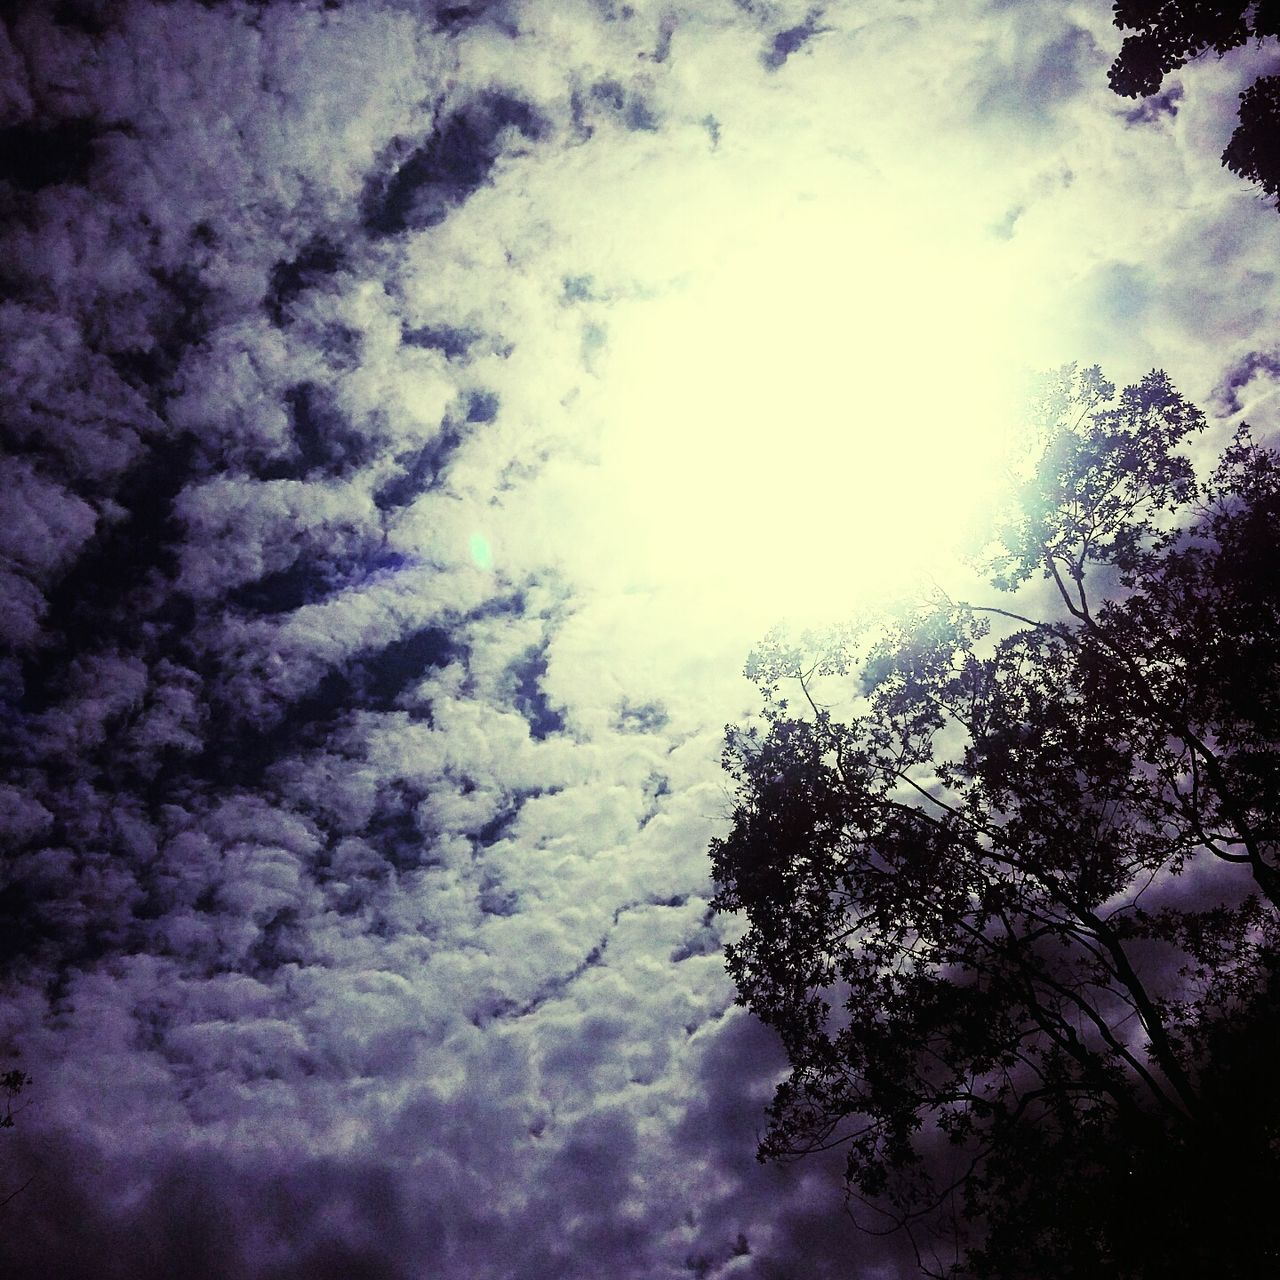 low angle view, nature, sky, beauty in nature, cloud - sky, cloudscape, tree, no people, scenics, day, outdoors, tranquility, backgrounds